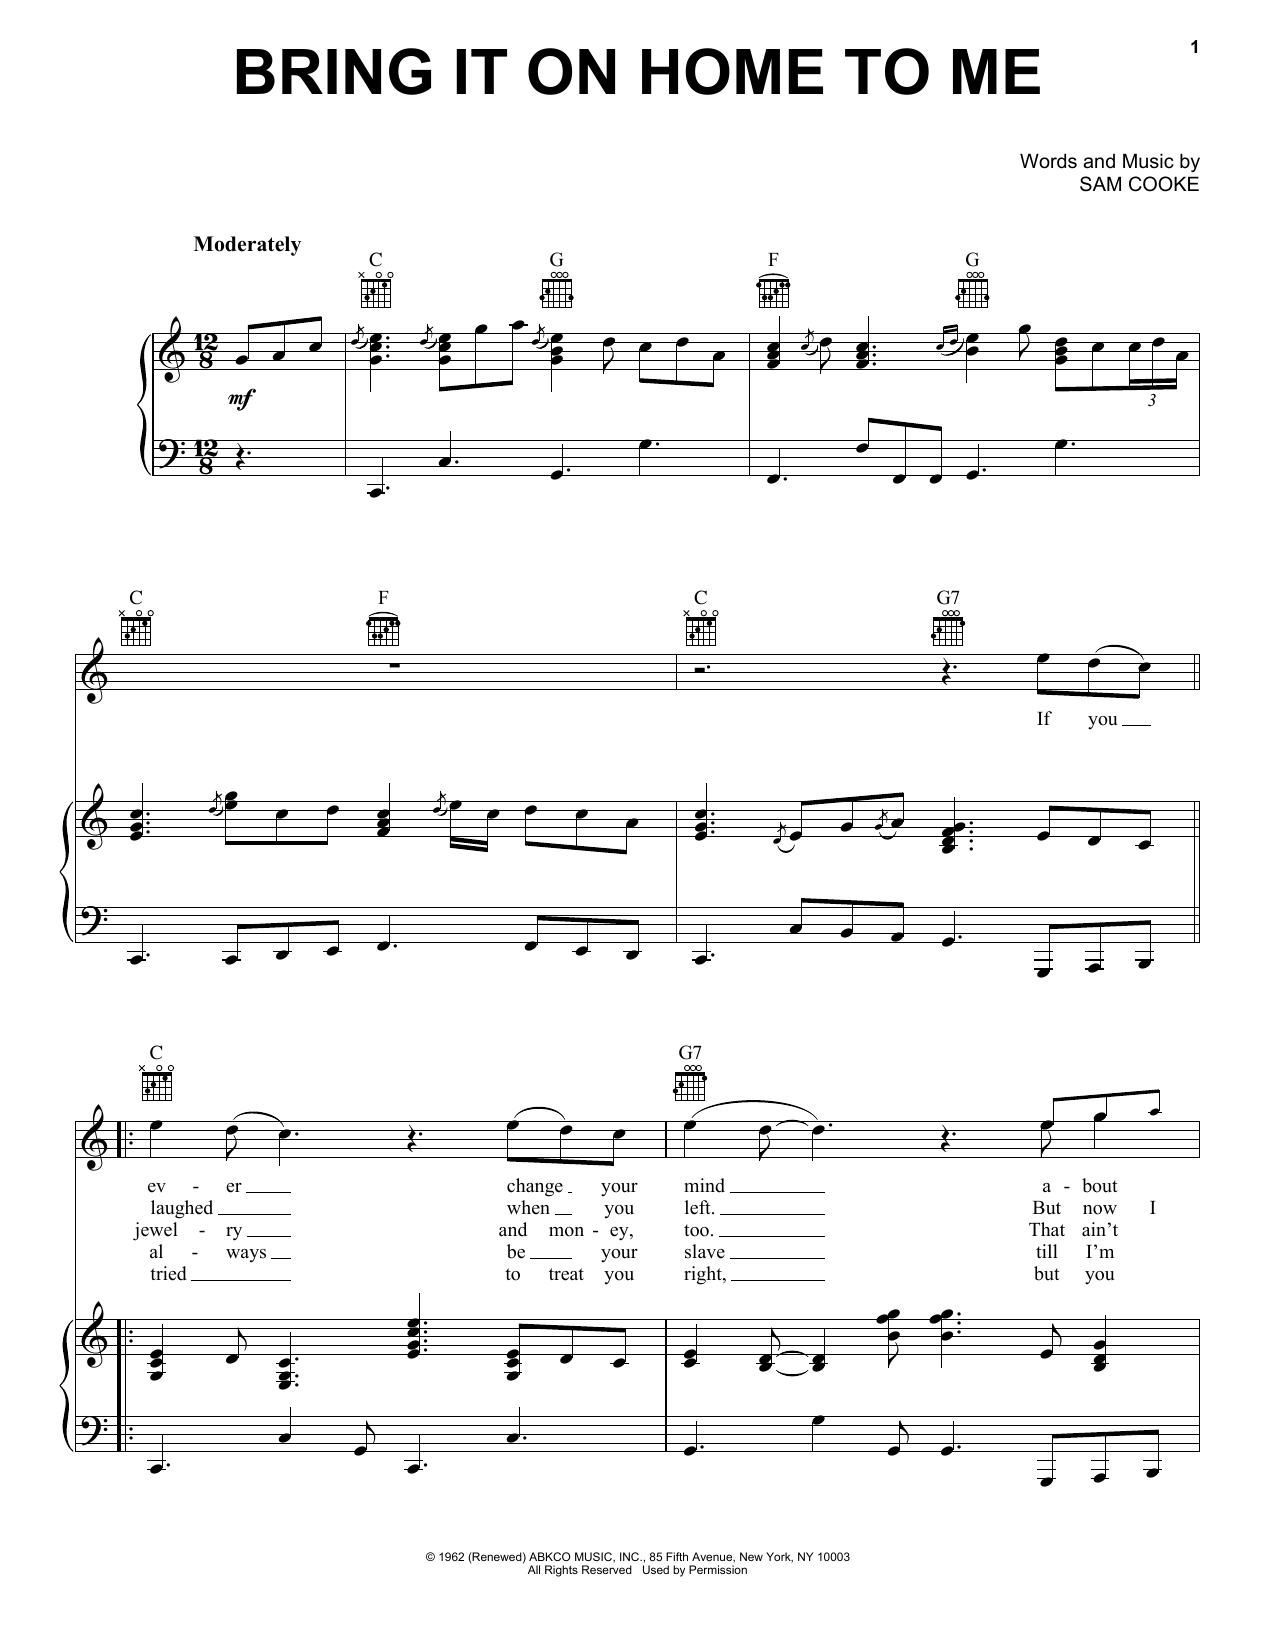 Sam Cooke Bring It On Home To Me Sheet Music Notes And Chords For